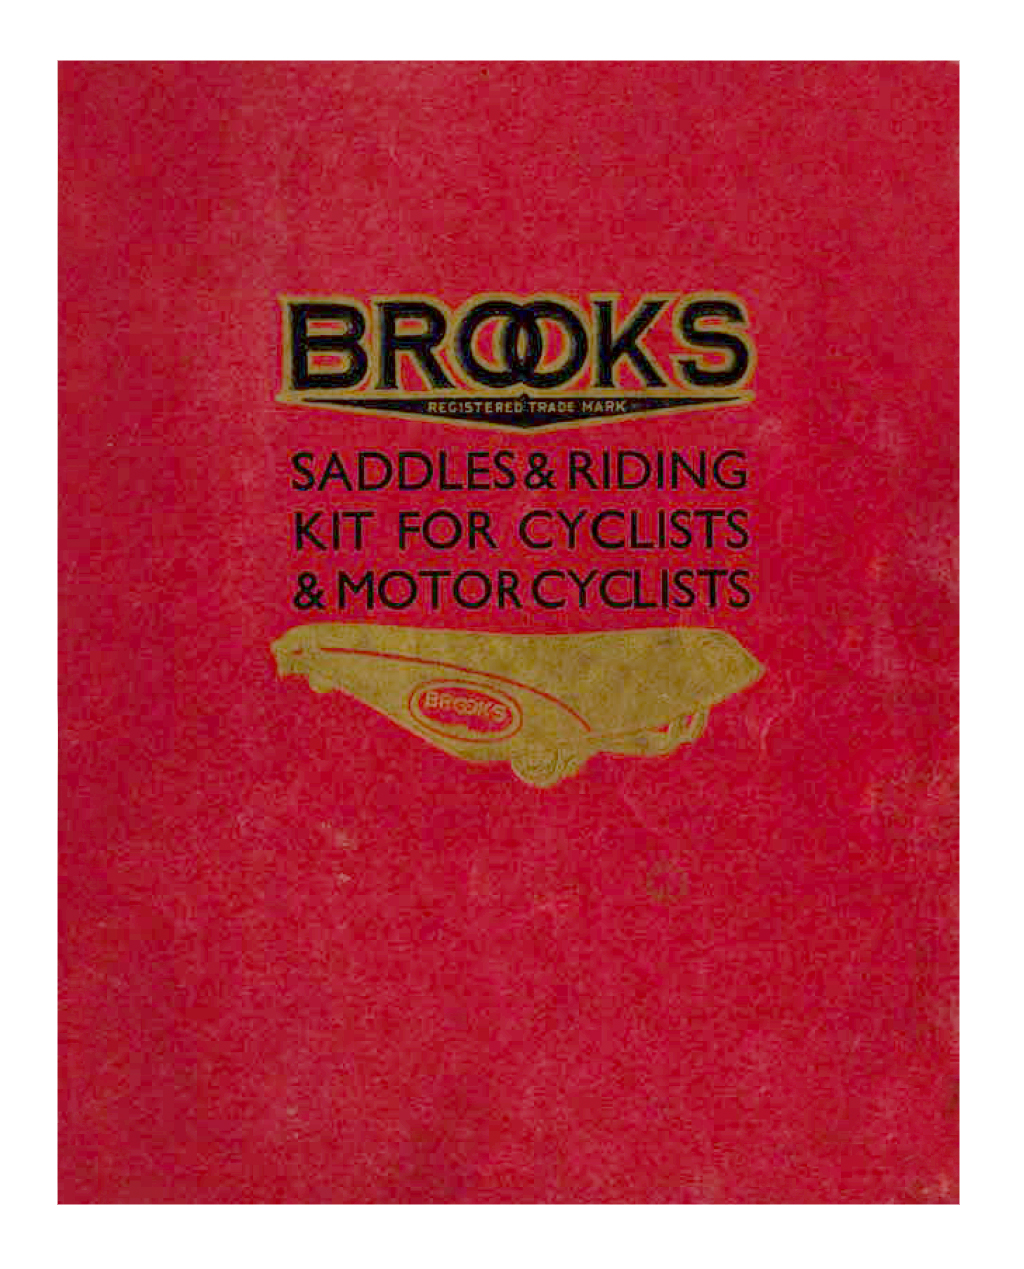 THE BROOKS BOOK 1933